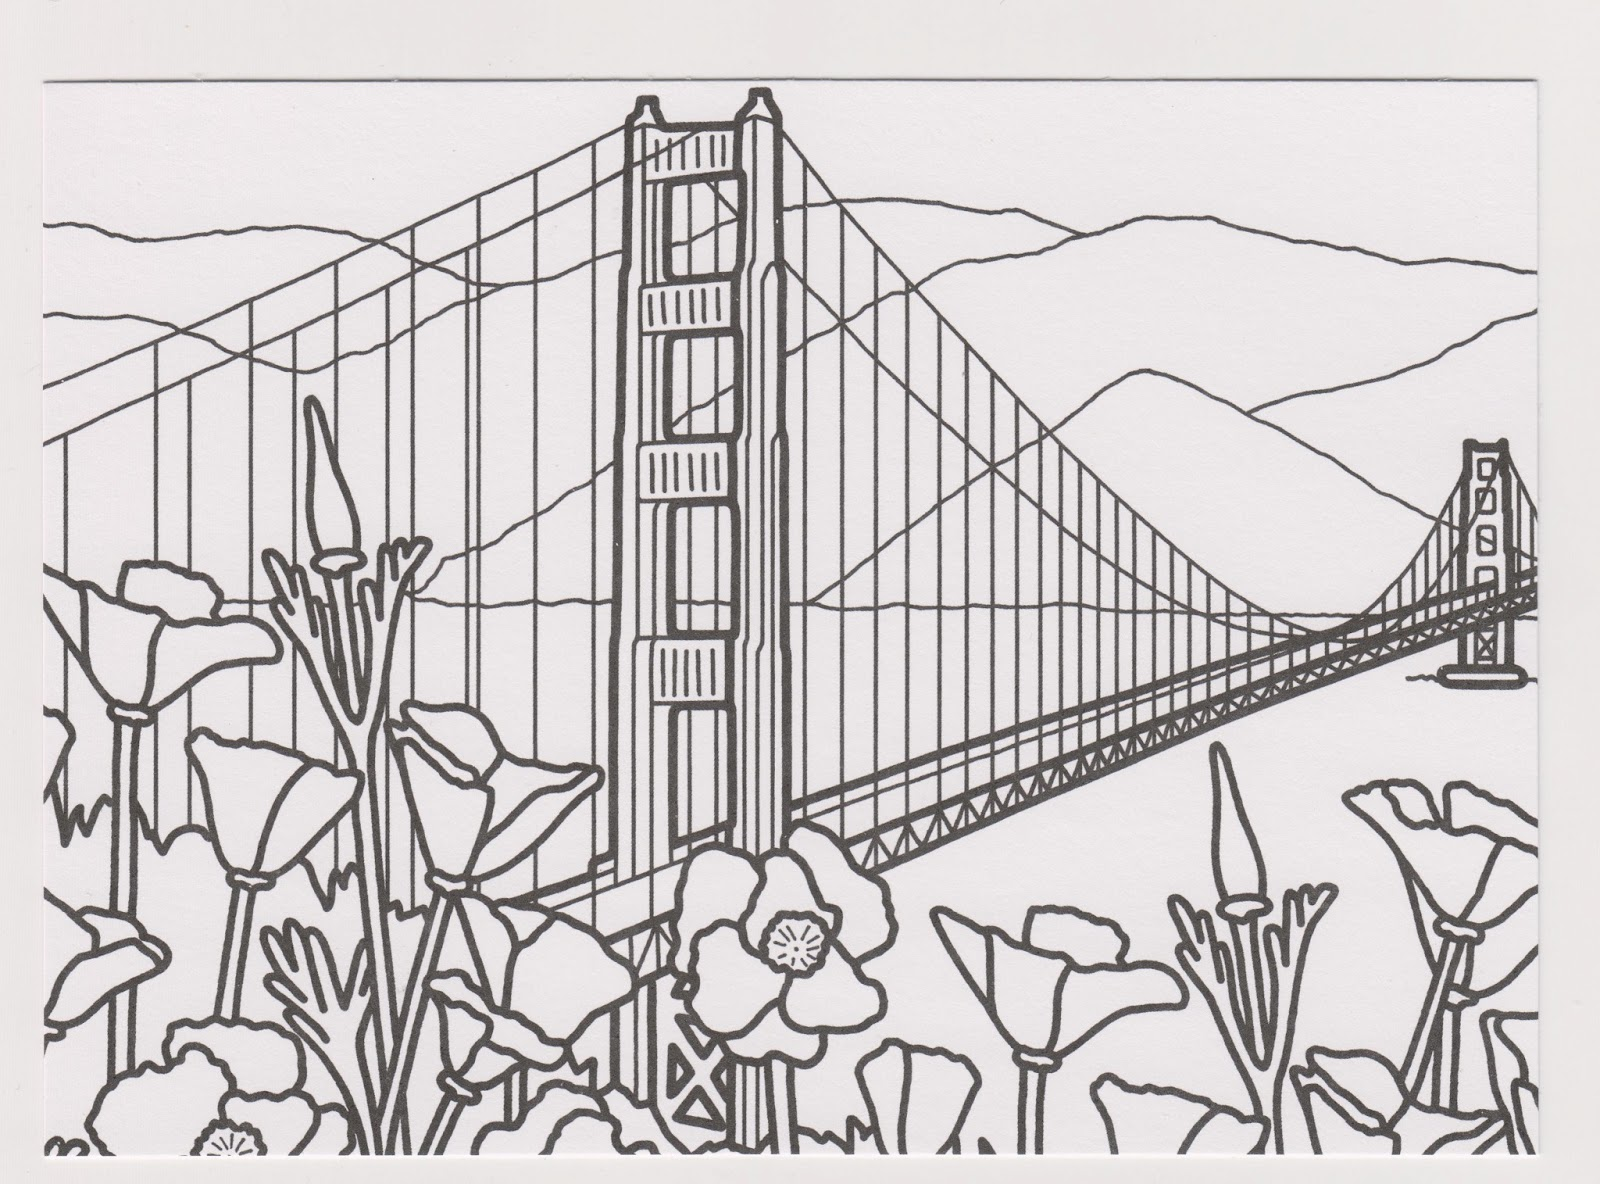 golden gate coloring pages - photo#13